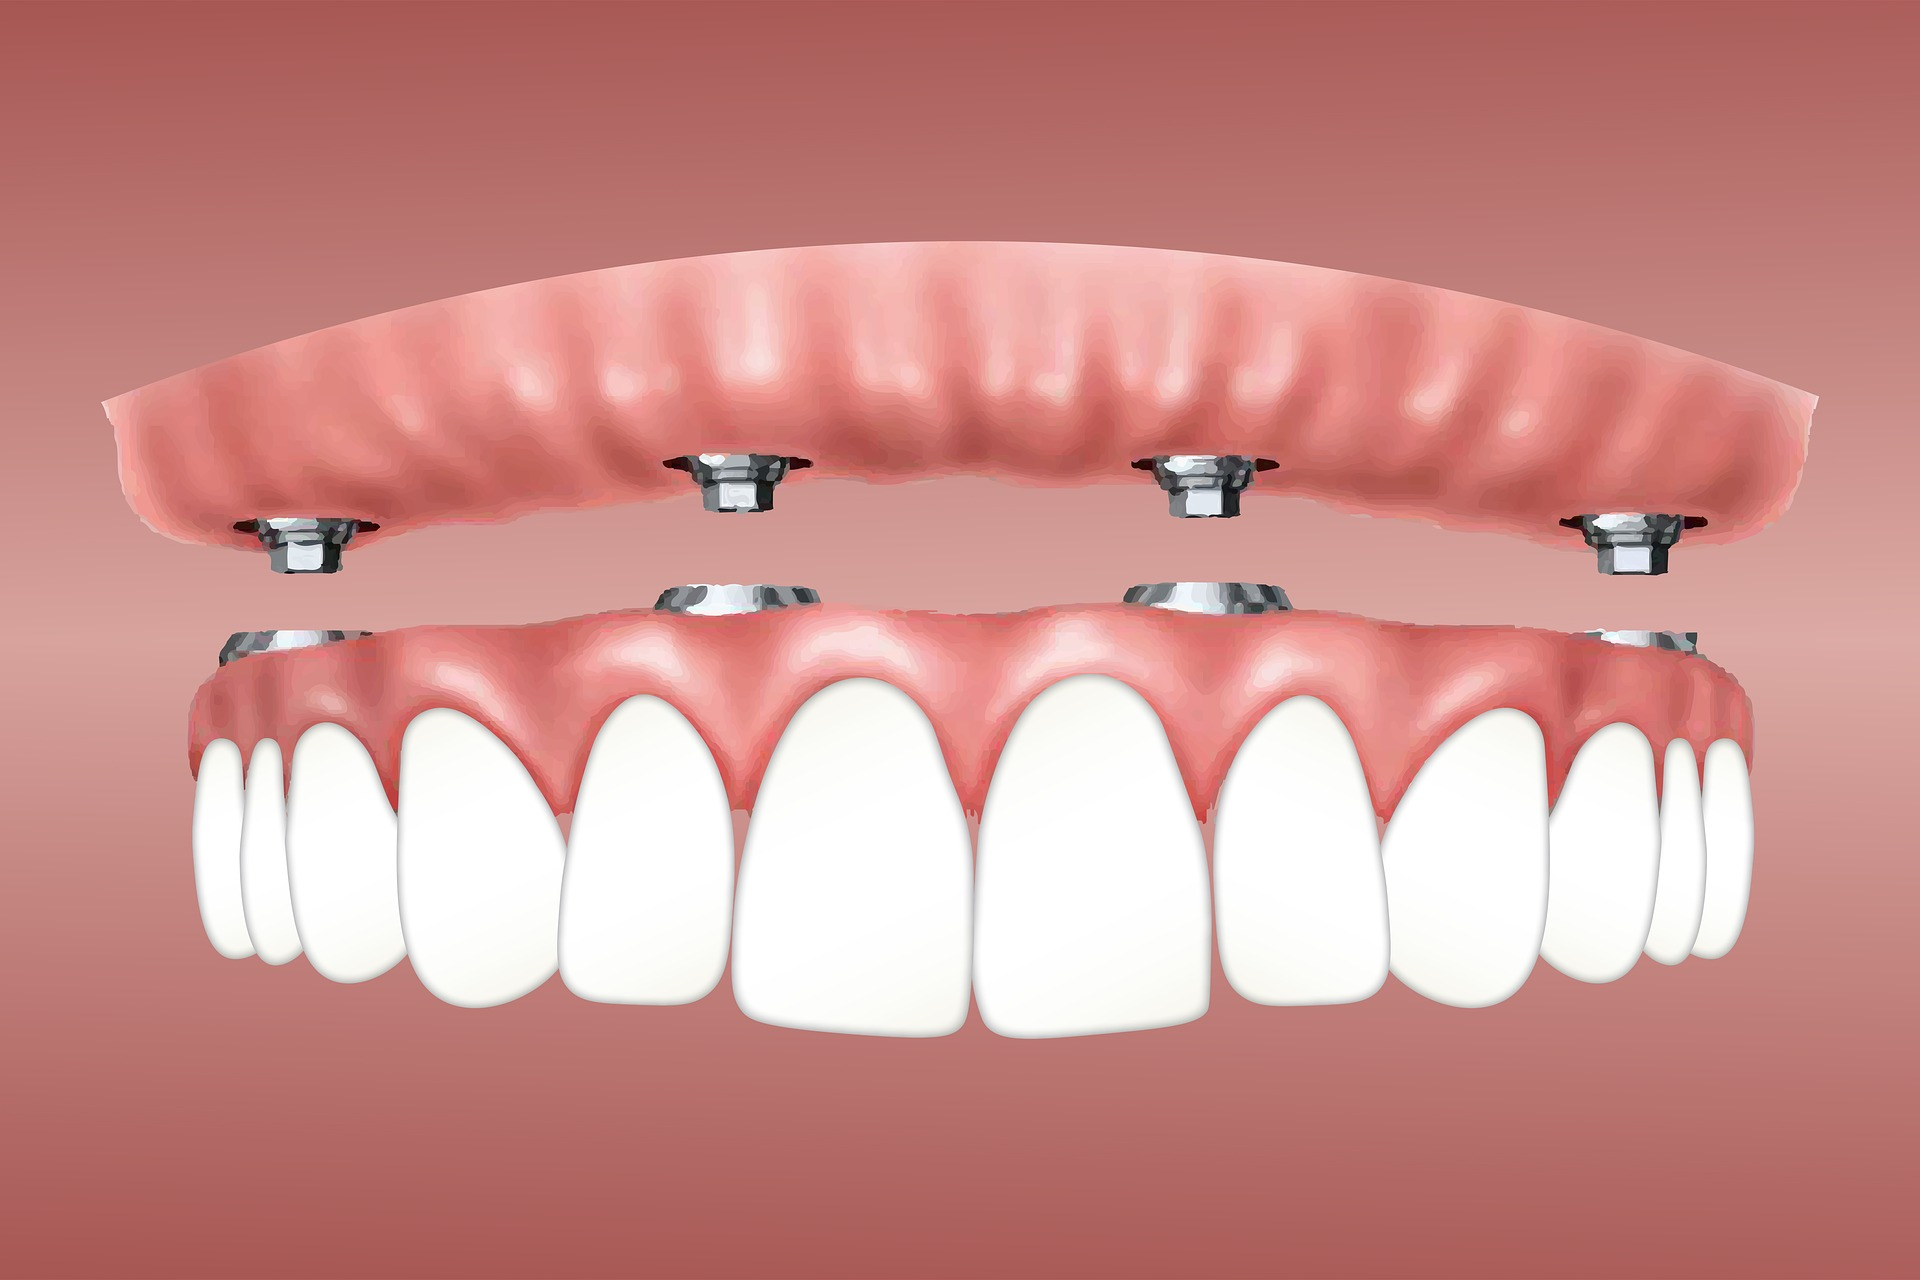 full denture tooth implants